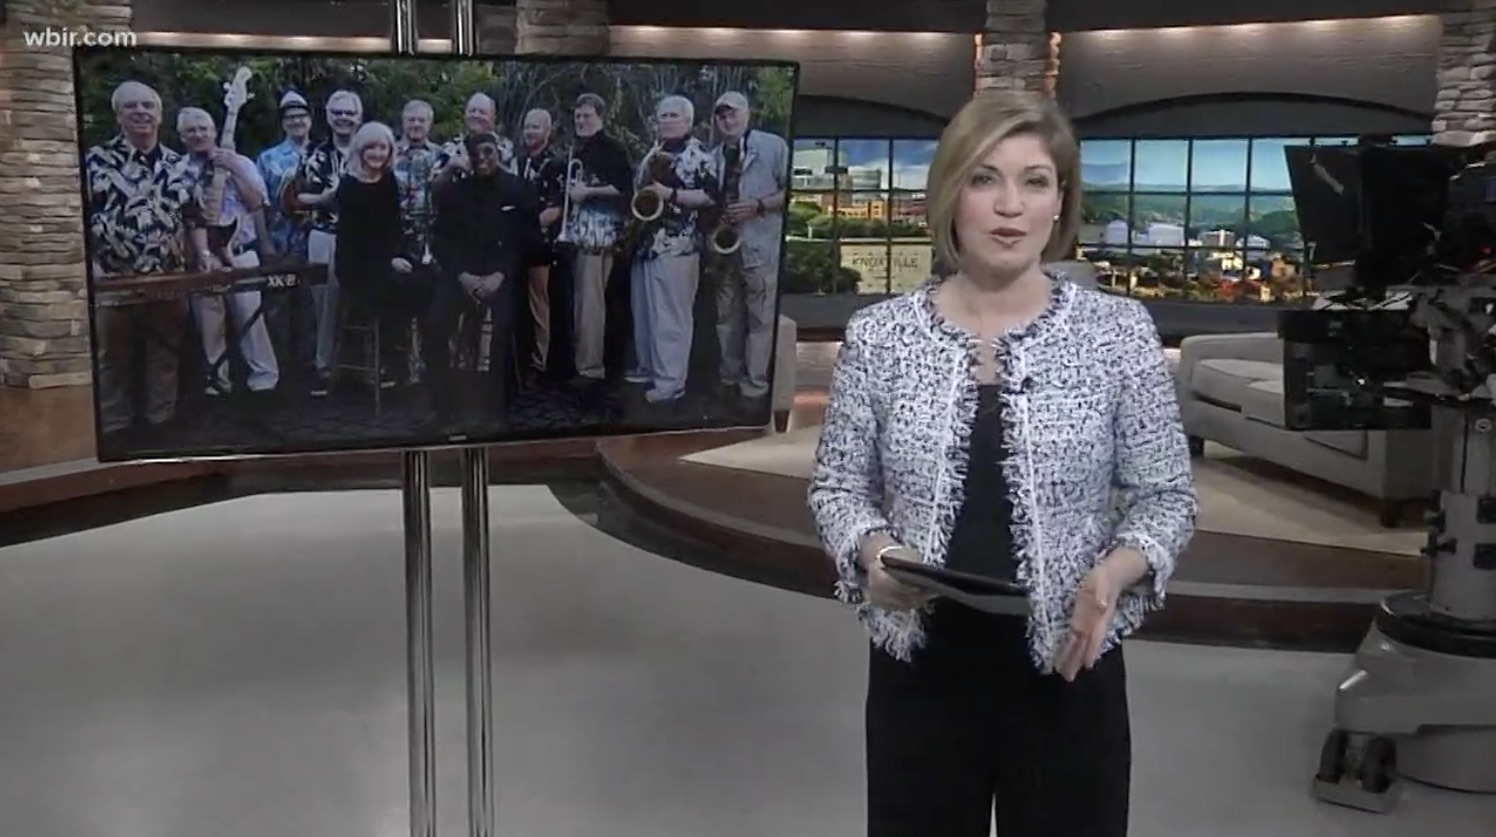 Second interview with Boys' Night Out  https://www.wbir.com/video/news/local/east-tn-band-performs-with-burt-reynolds/51-8060382